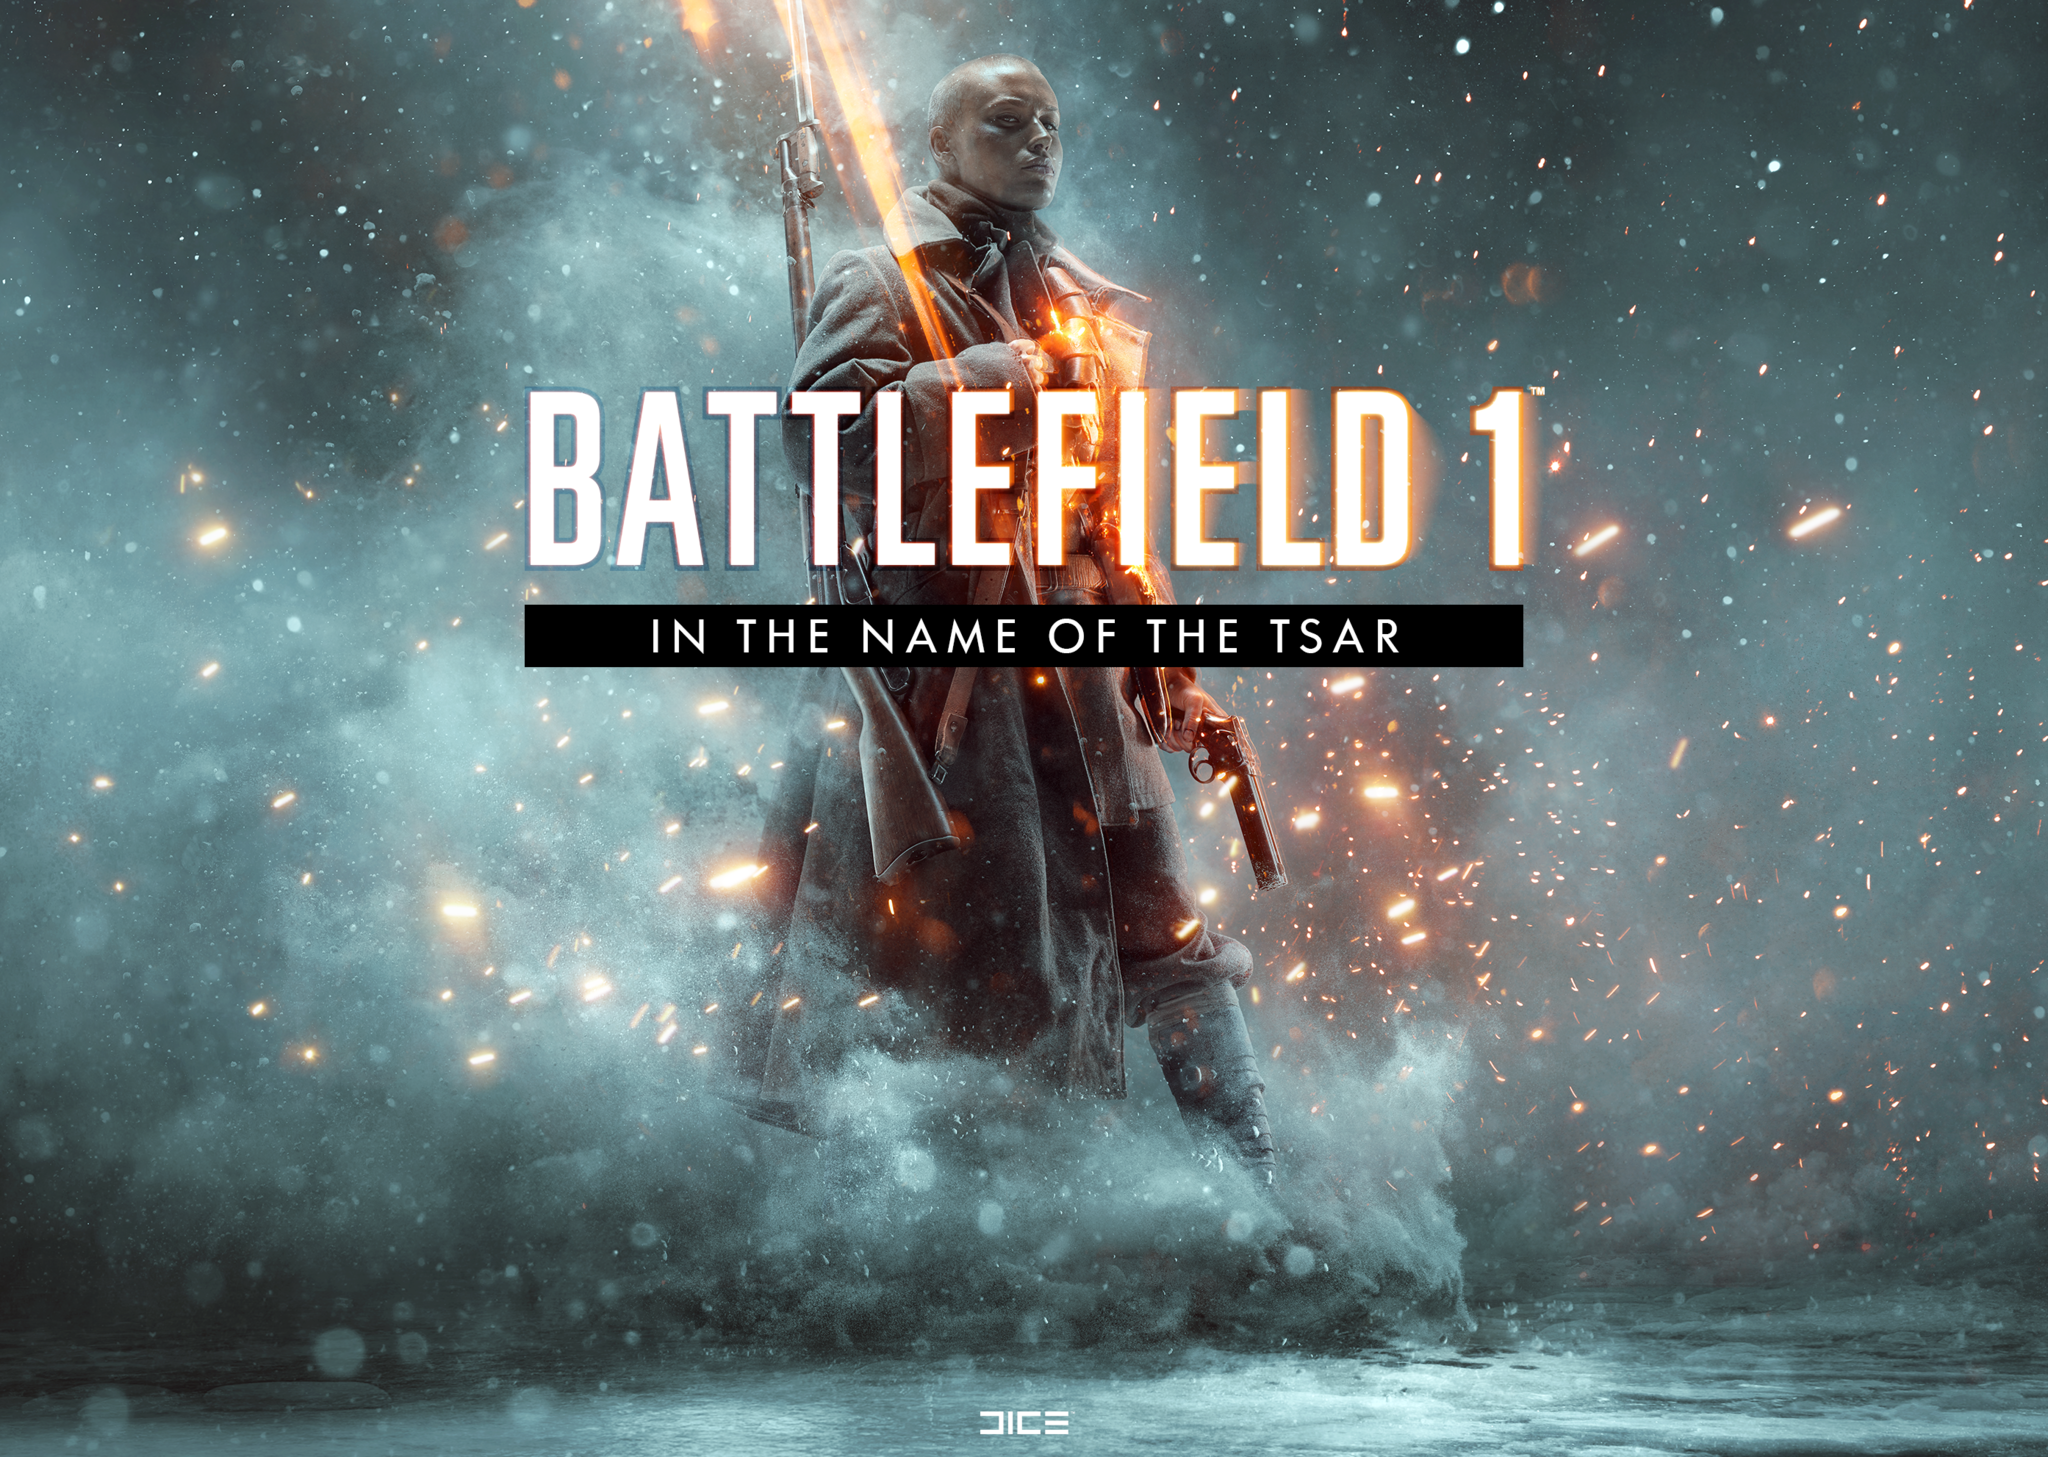 Historical accuracy, not a diversity push, brought 'Battlefield' playable female characters